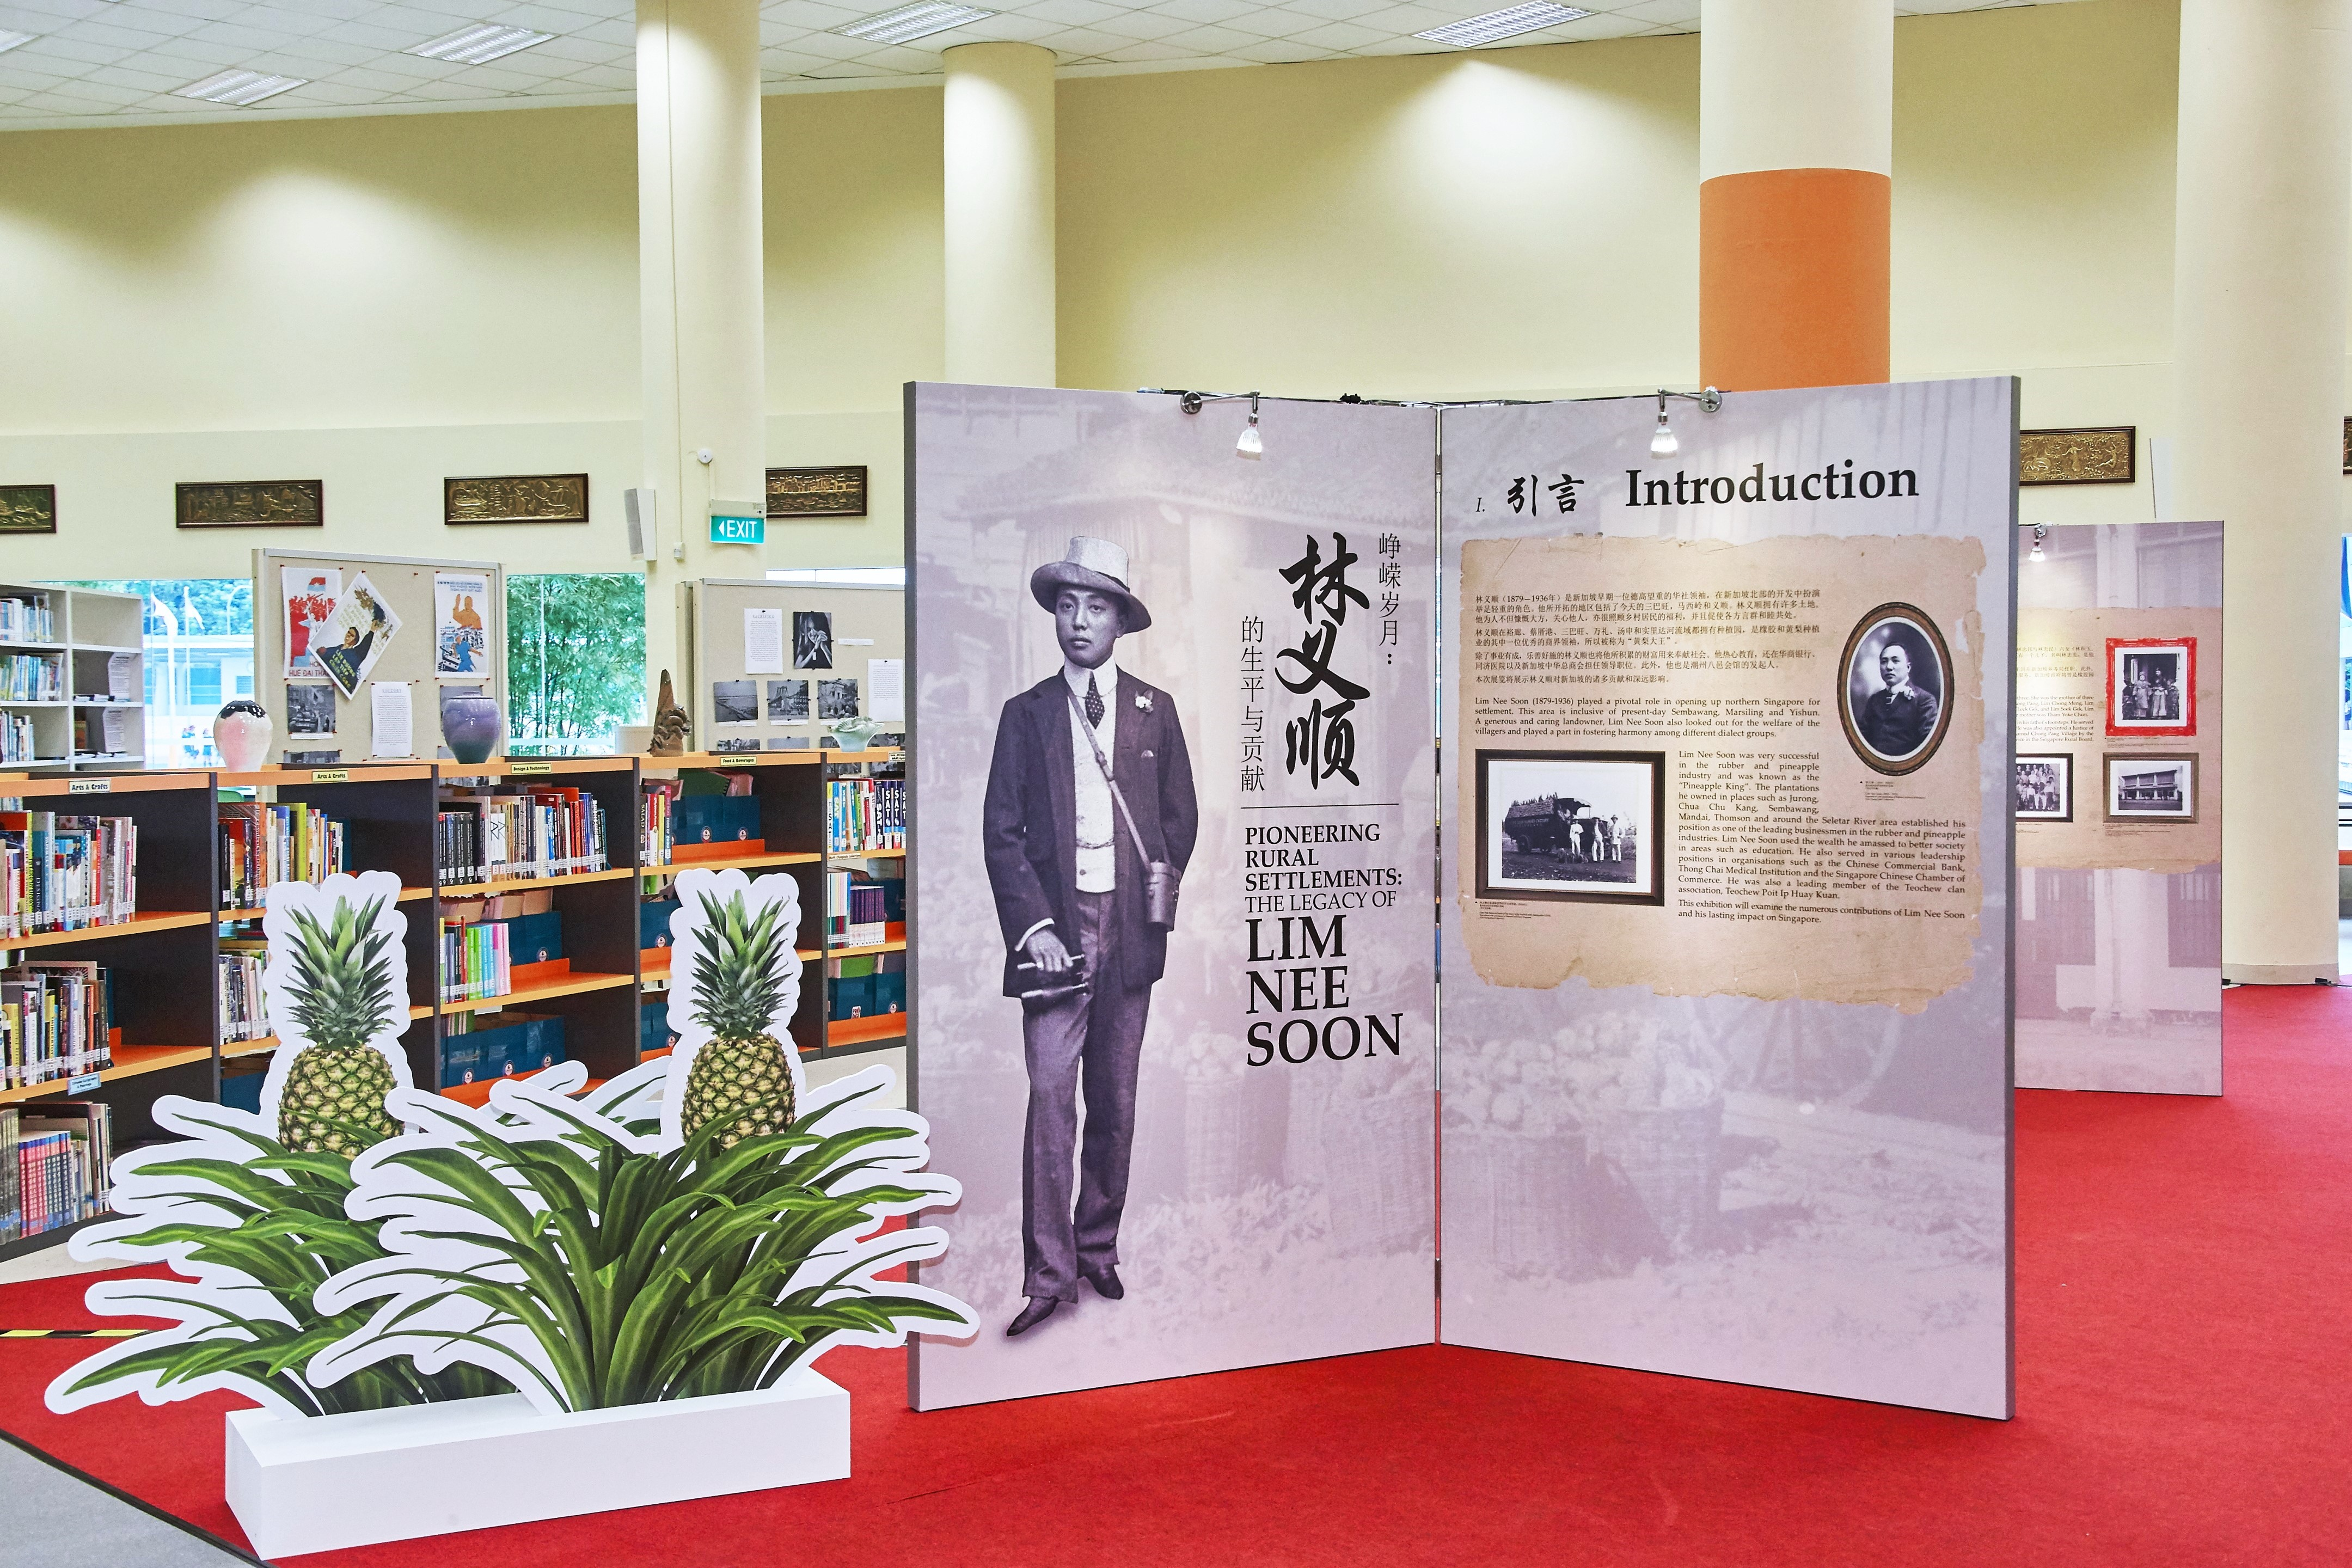 Travelling Exhibition - Pioneering Rural Settlements Legacy Of Lim Nee